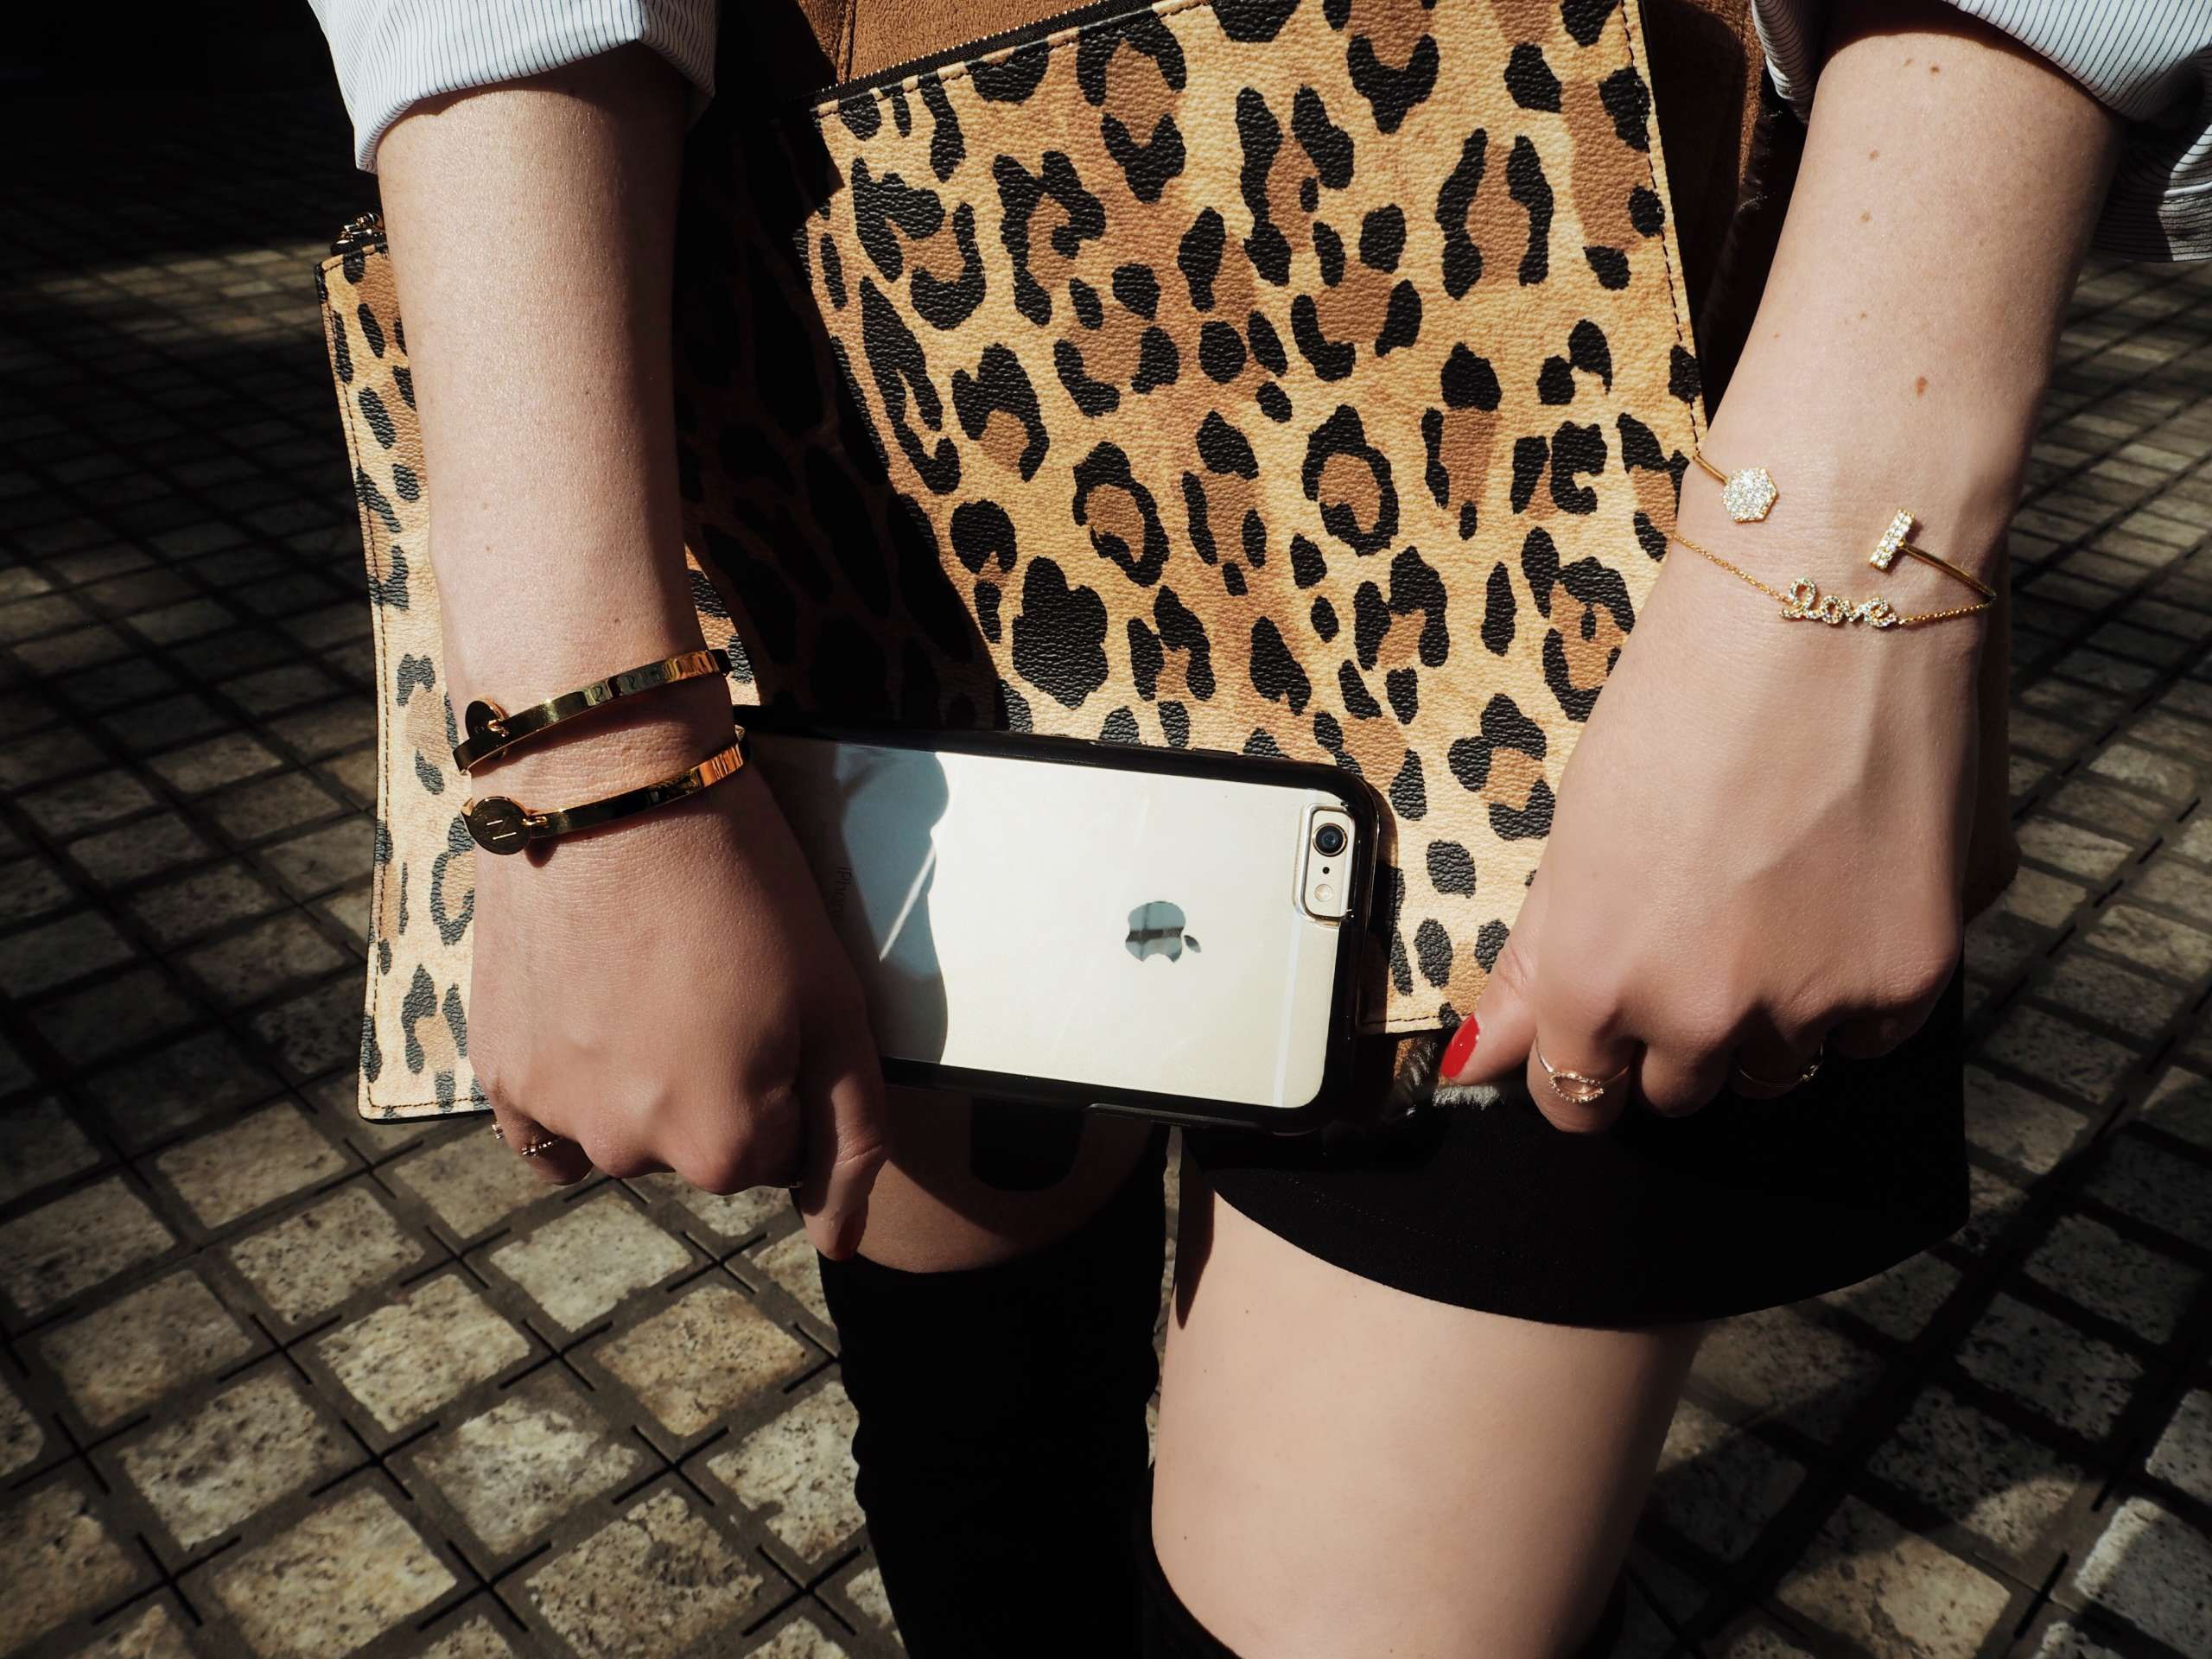 shearling-vest-gucci-belt-public-desire-over-the-knee-boots-givenchy-bag-leopard-print-myjewellery-initial-armband-symmetry-series-clear-phone-case-otterbox-scheepsvaart-museum-Amsterdam-hilton-hotel